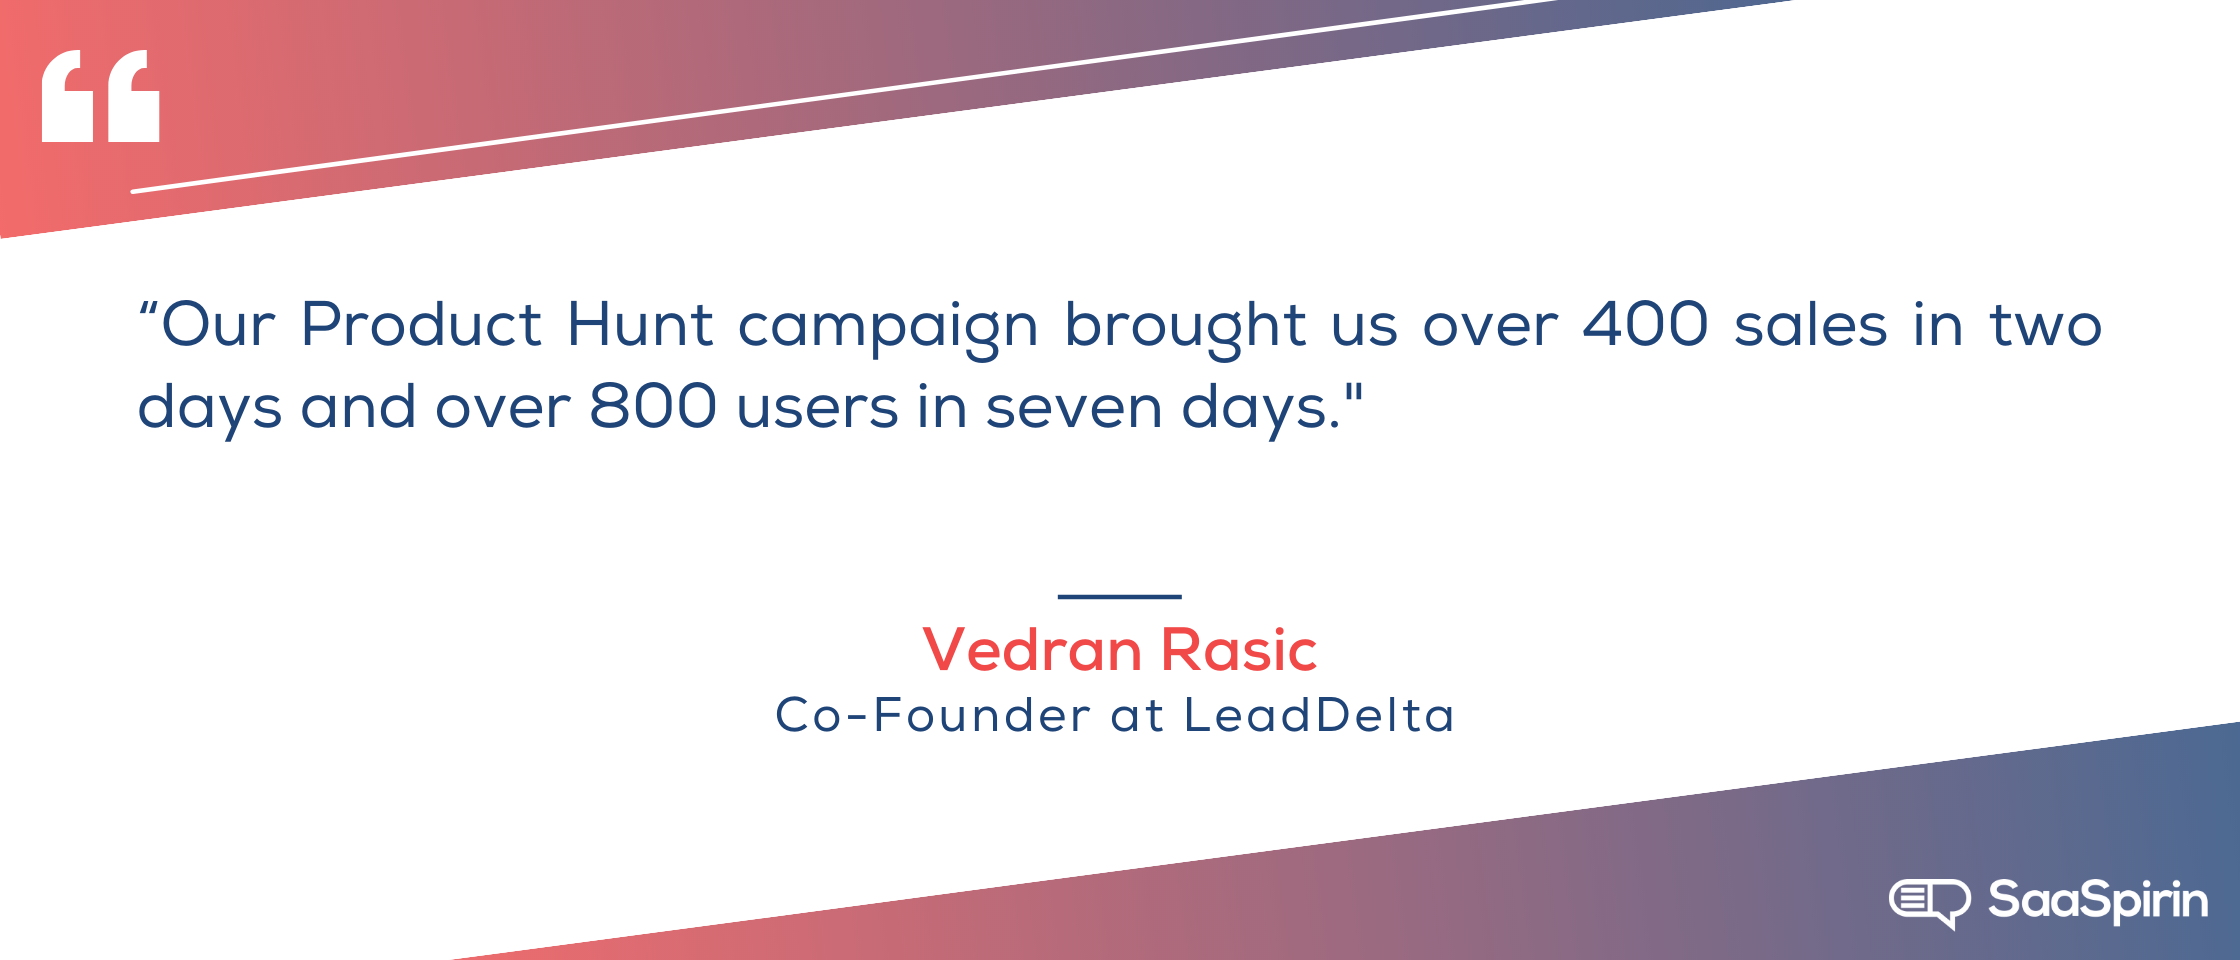 Our-Product-Hunt-campaign-brought-us-over-400-sales-in-two-days-and-over-800-users-in-seven-days.png